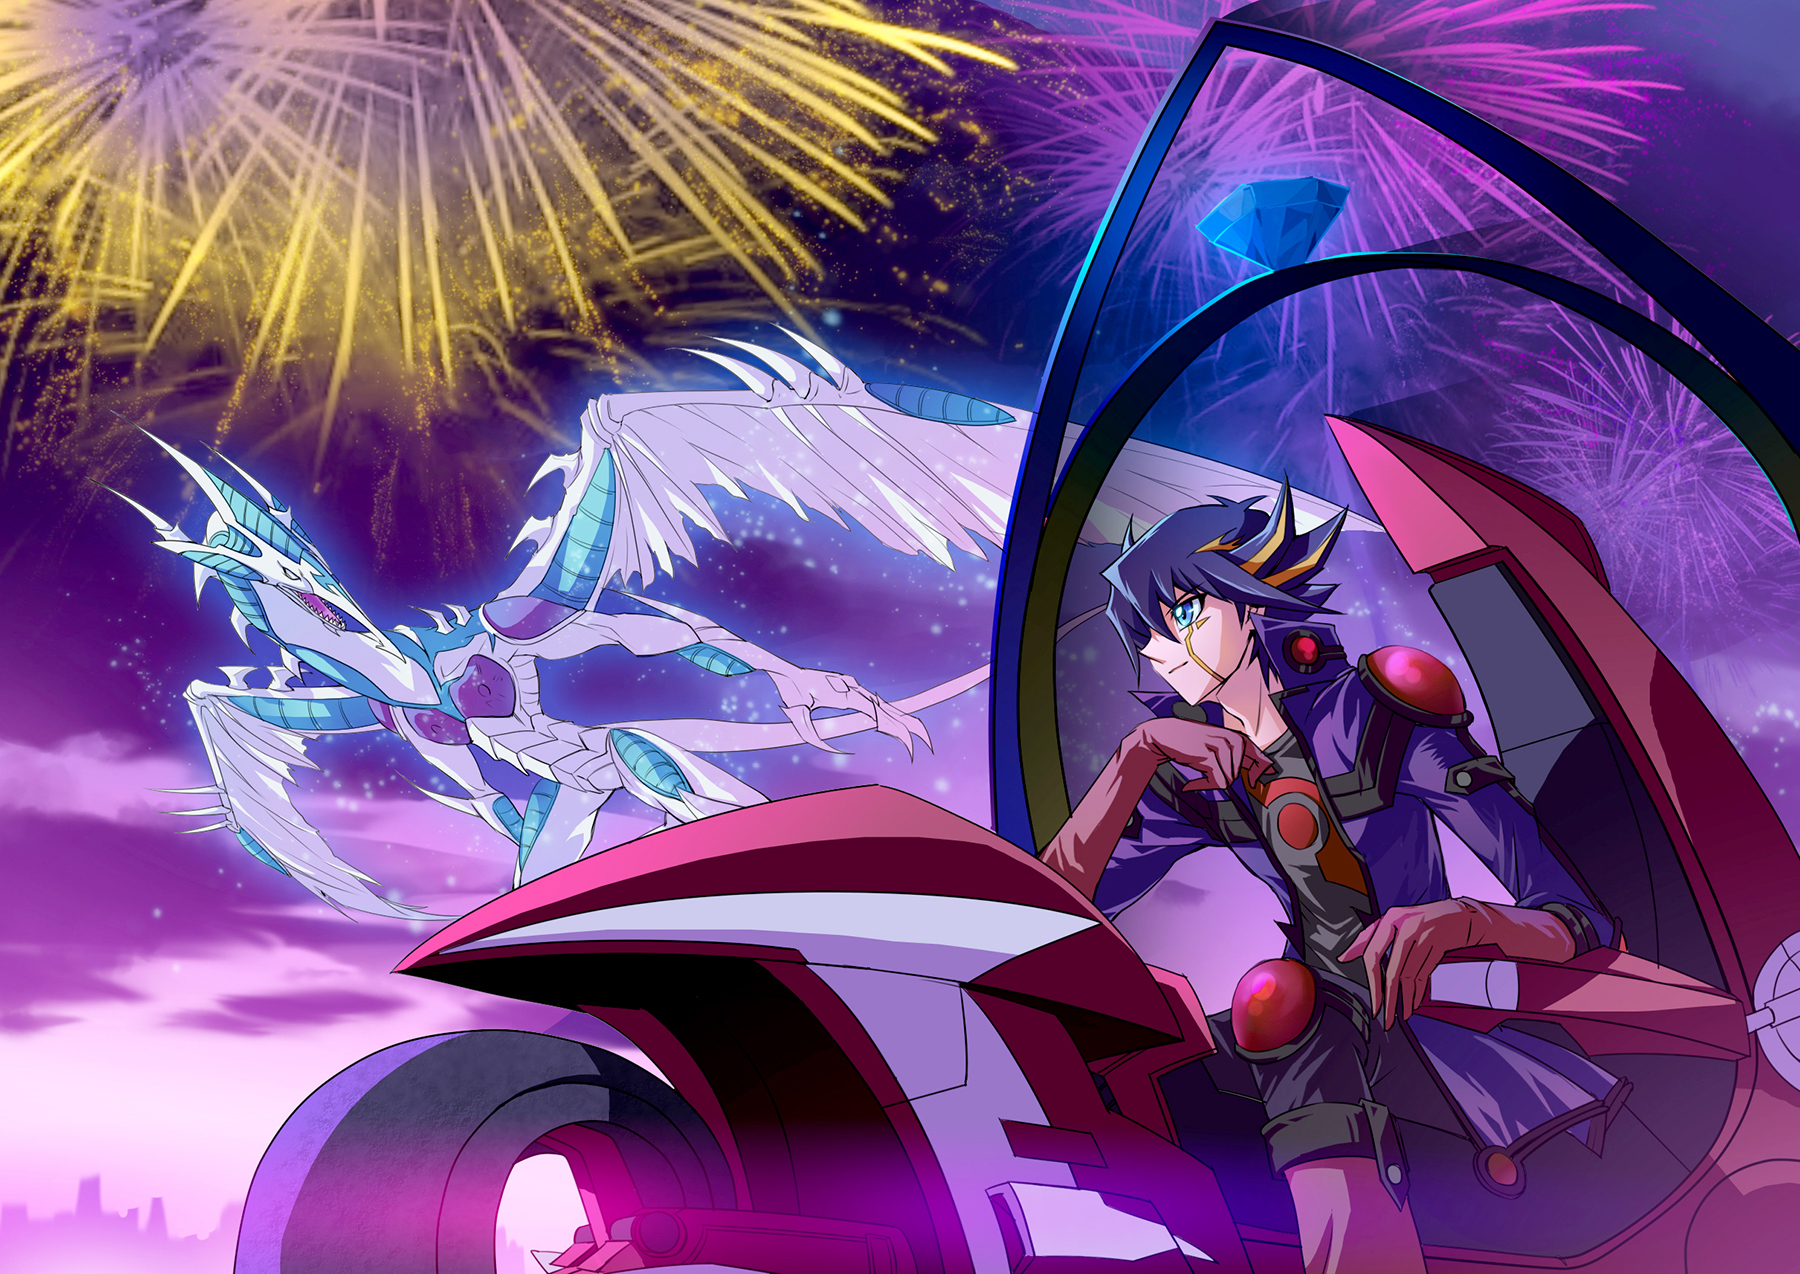 Yugioh 5ds Stardust Dragon Yu-Gi-Oh! 5D's Image #...